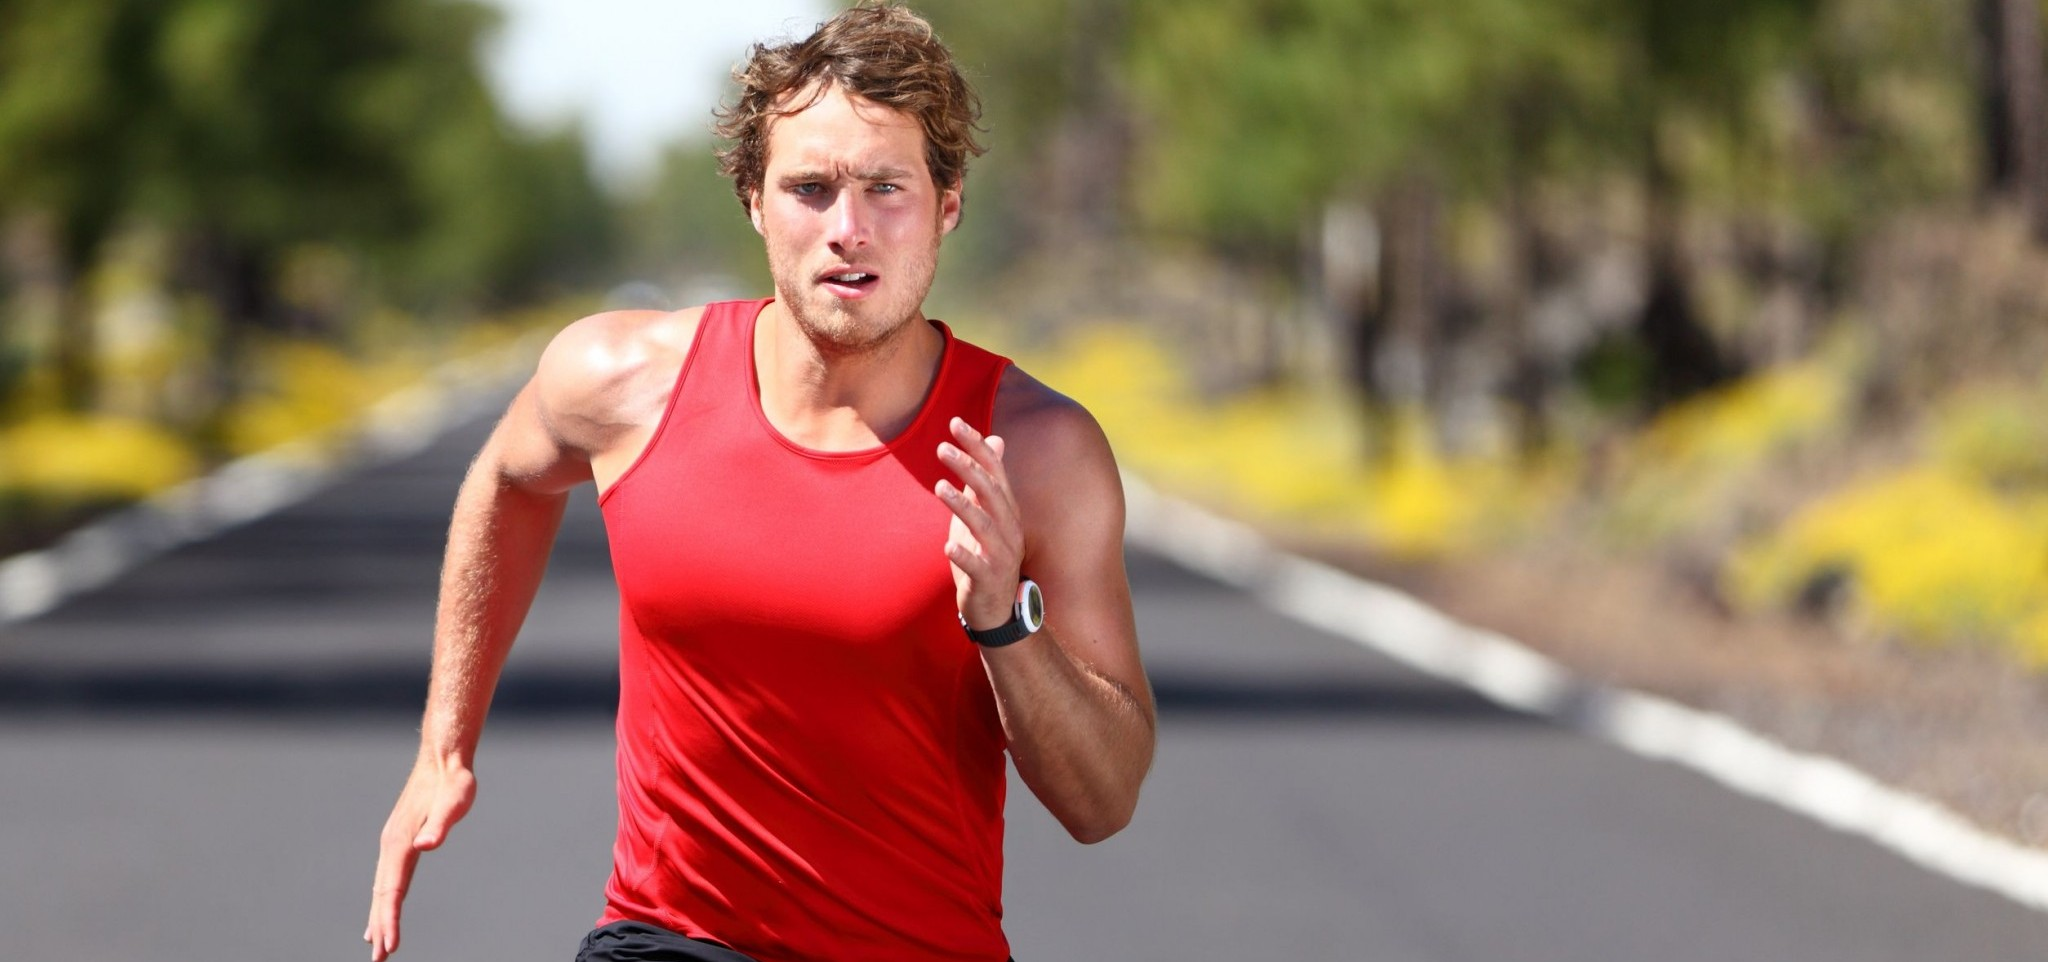 Top 3 Nutrients for Men Runners | Just Run Lah!